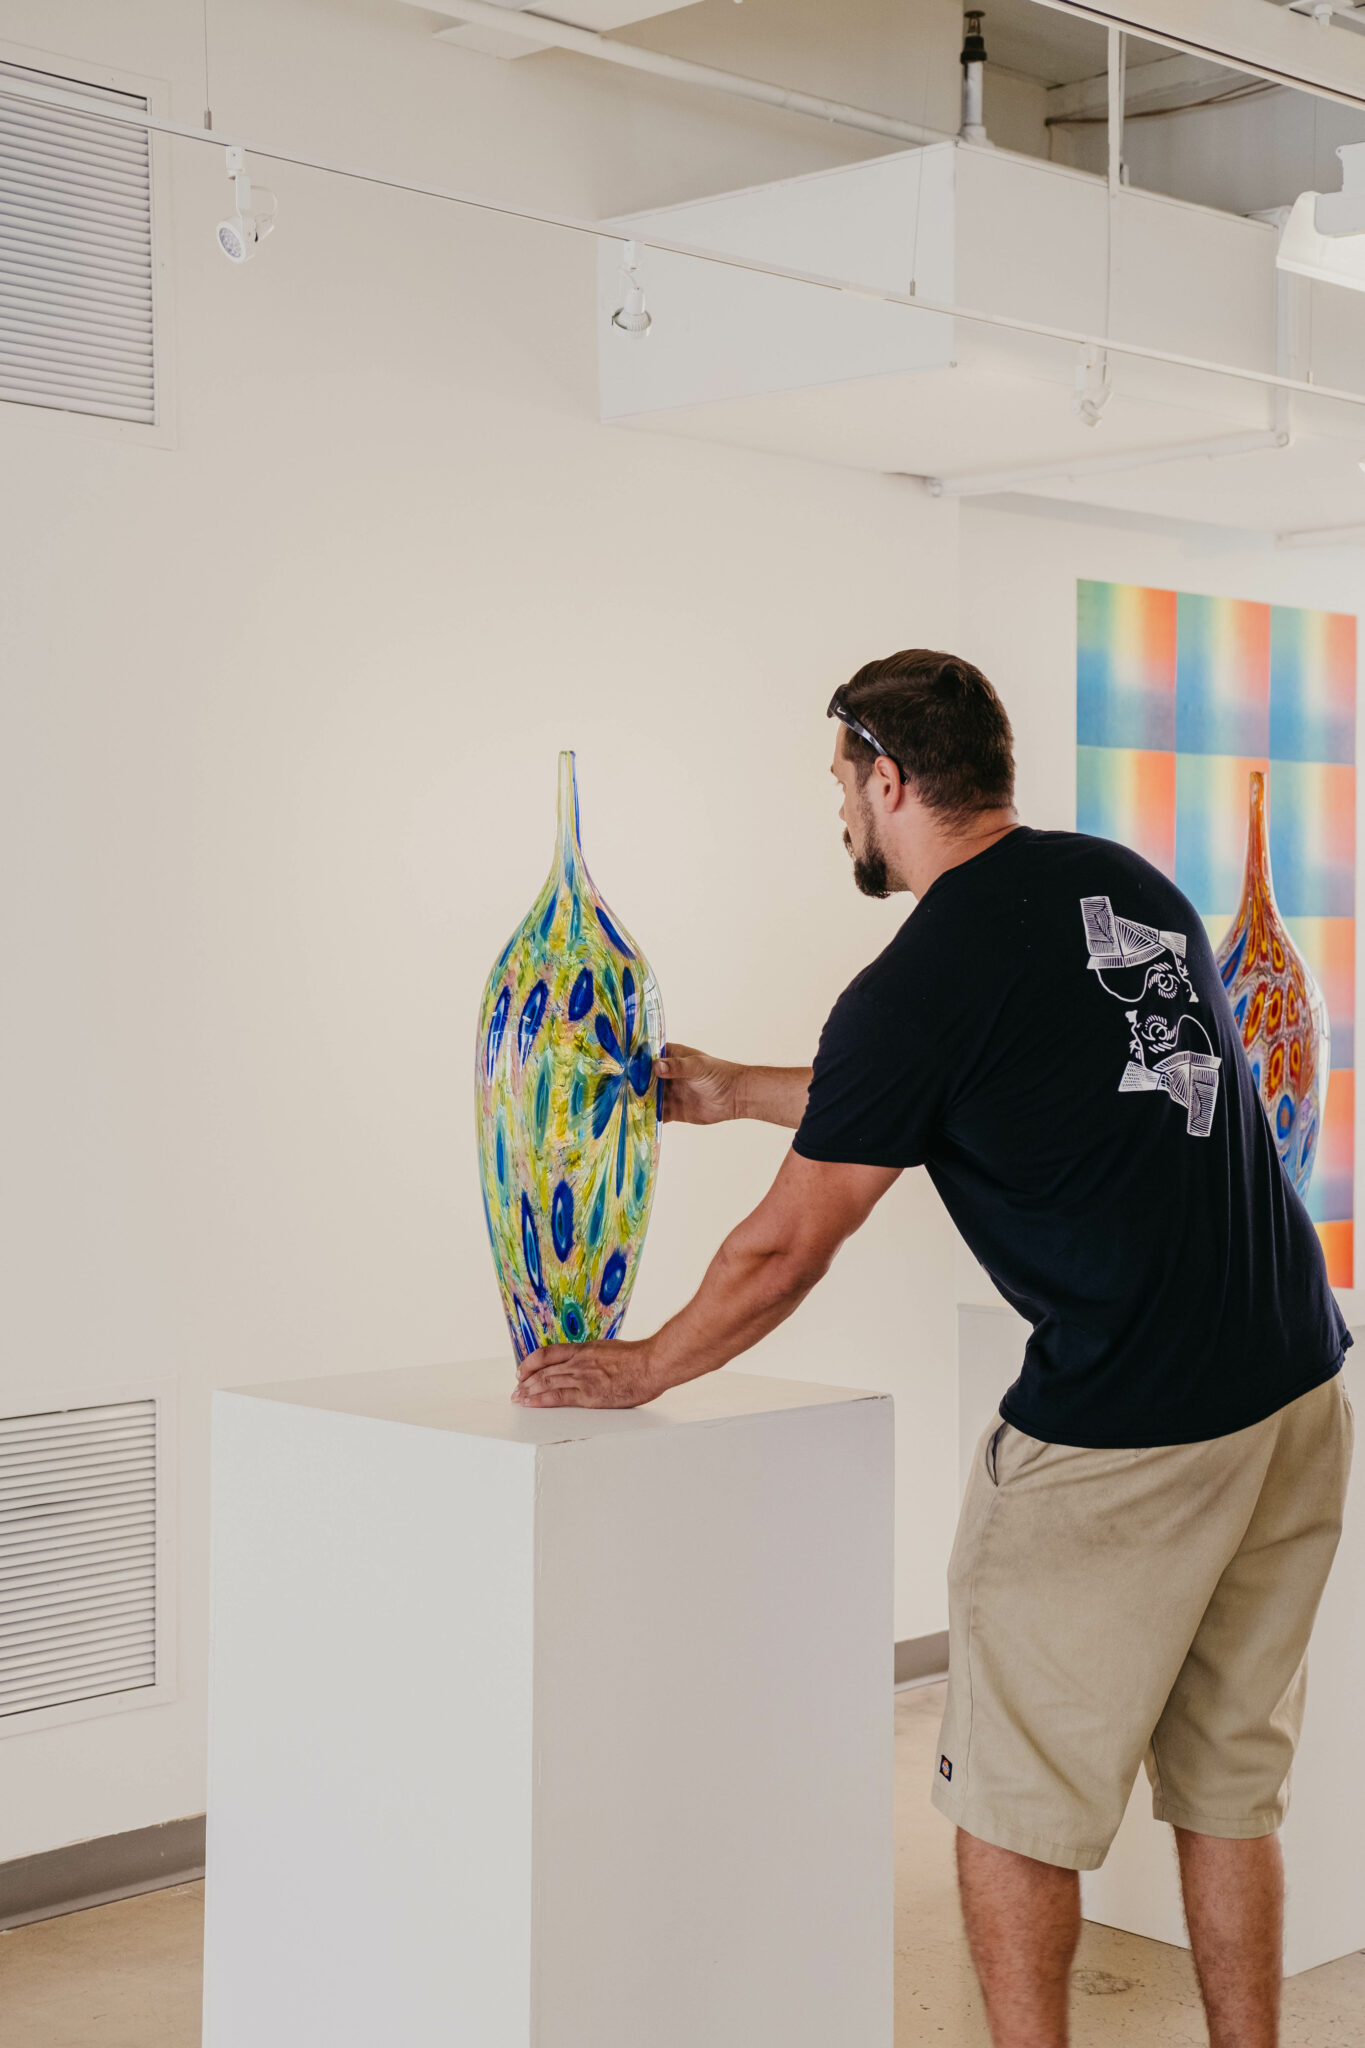 Dan Alexander, placing a tall, narrow piece of glass artwork on a white pedestal. He is turned away from the camera. The artwork is translucent blue and green.